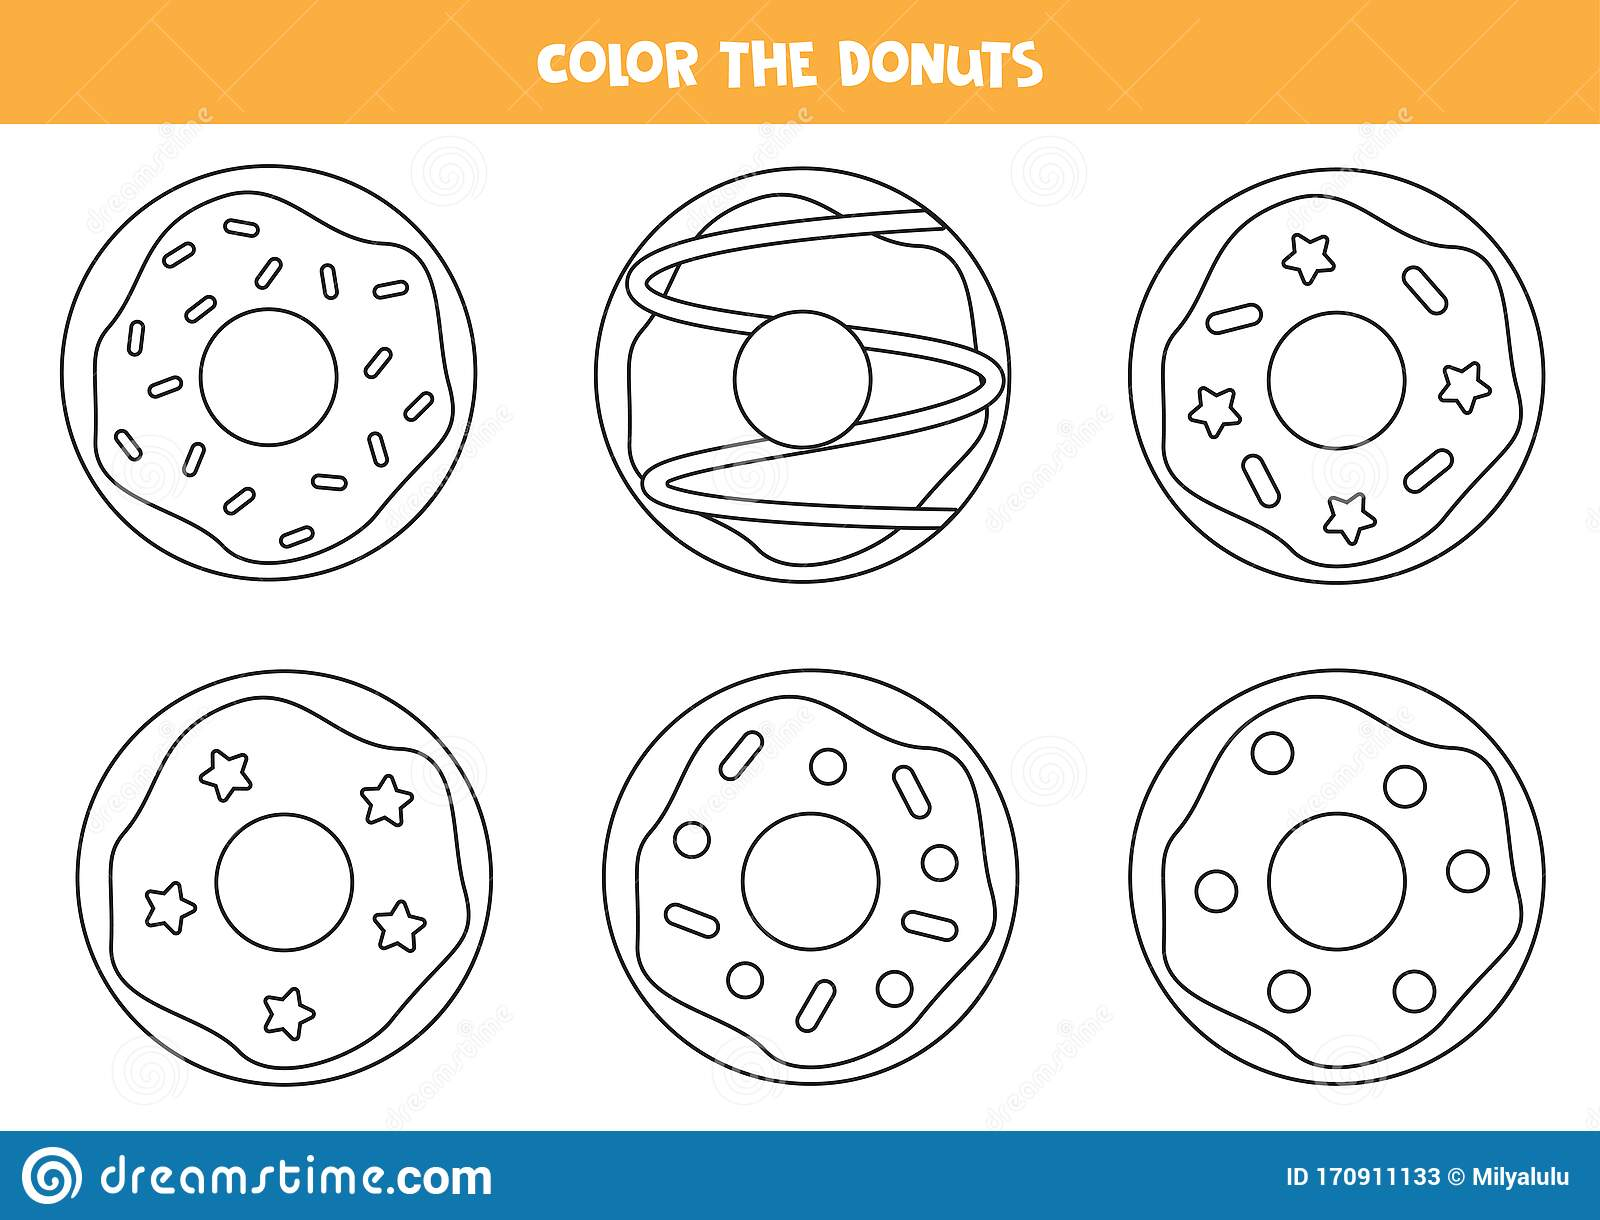 Coloring Page Of Cartoon Donuts Game For Kids Stock